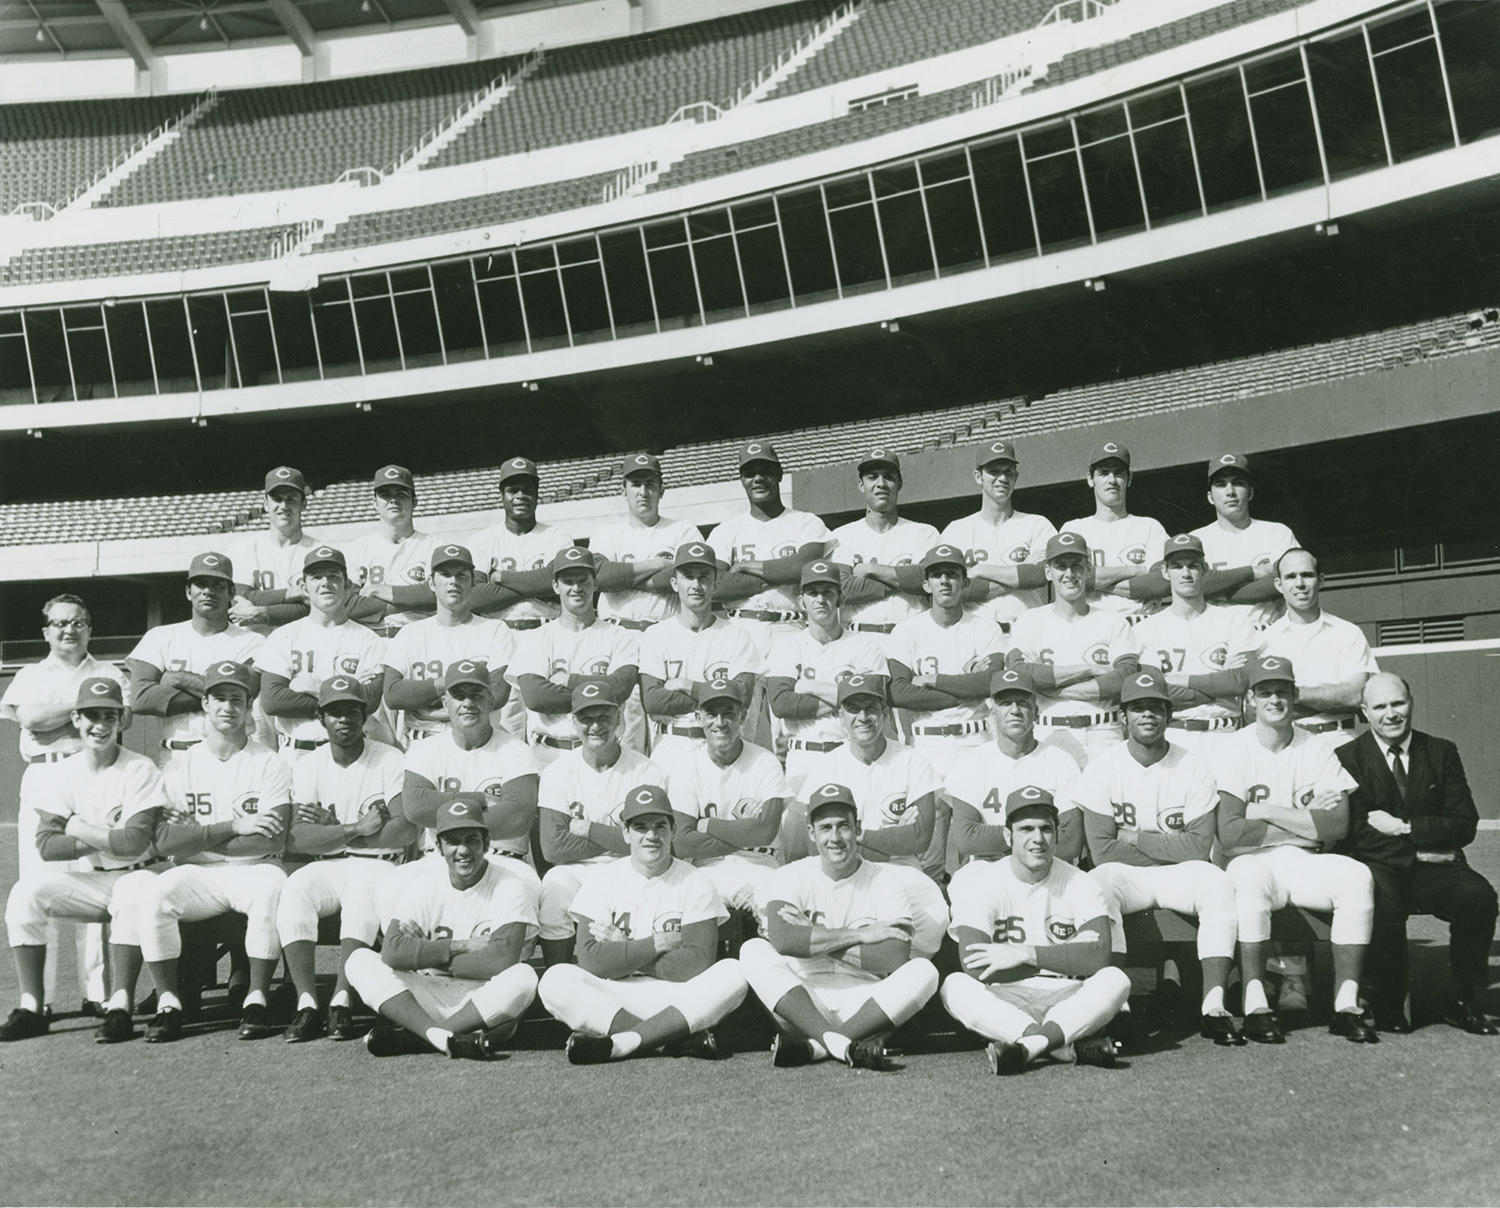 "Tommy Helms, who played for the Cincinnati Reds from 1964-1971, helped contribute to their National League pennant win in 1970. In this team photo from that year, Helms sits seventh from the left in the third row. <a href=""https://collection.baseballhall.org/PASTIME/cincinnati-reds-team-photograph-1970"">PASTIME</a> (National Baseball Hall of Fame and Museum)"